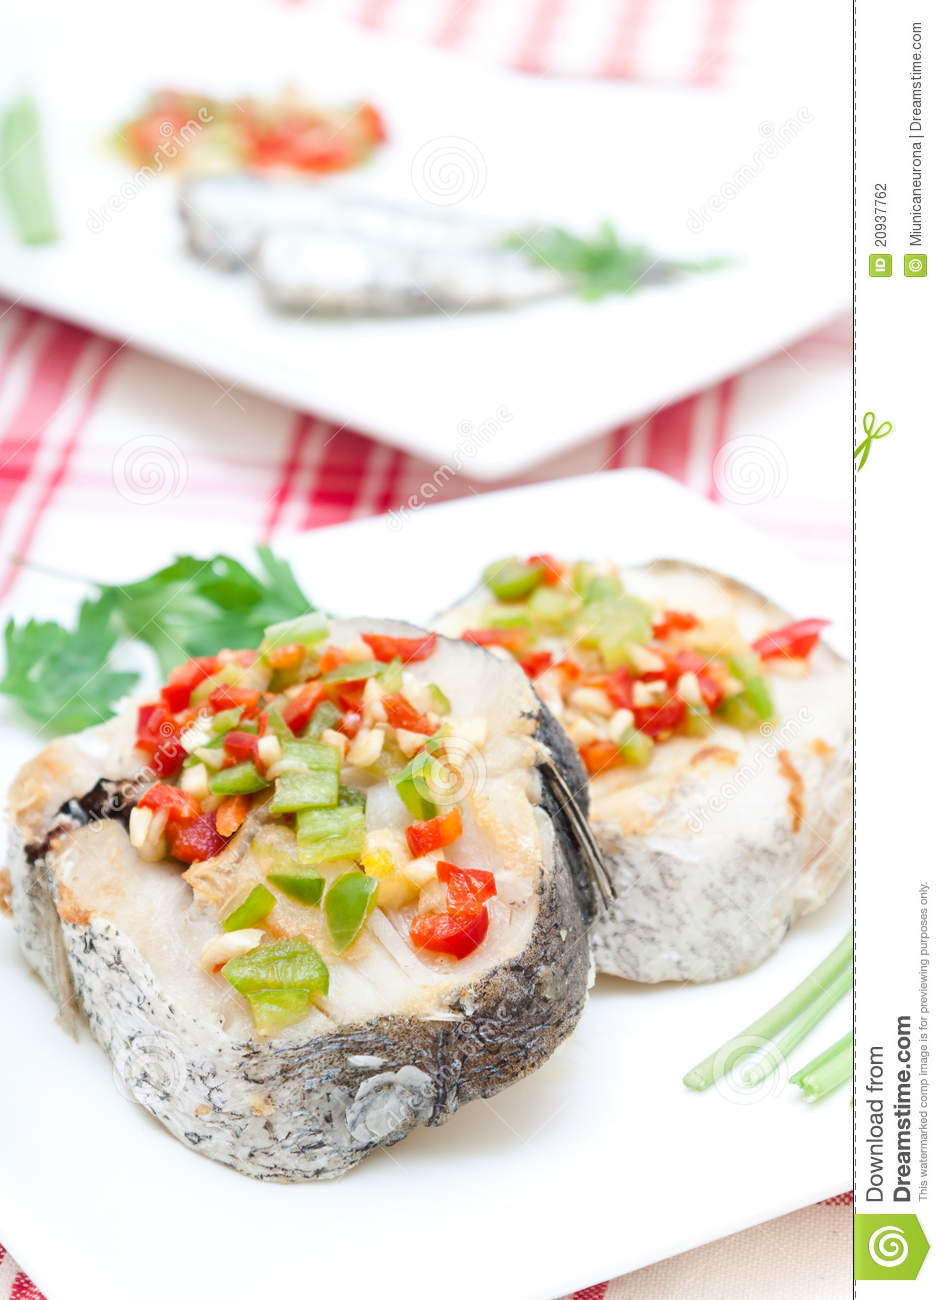 Hake fillets with peppers